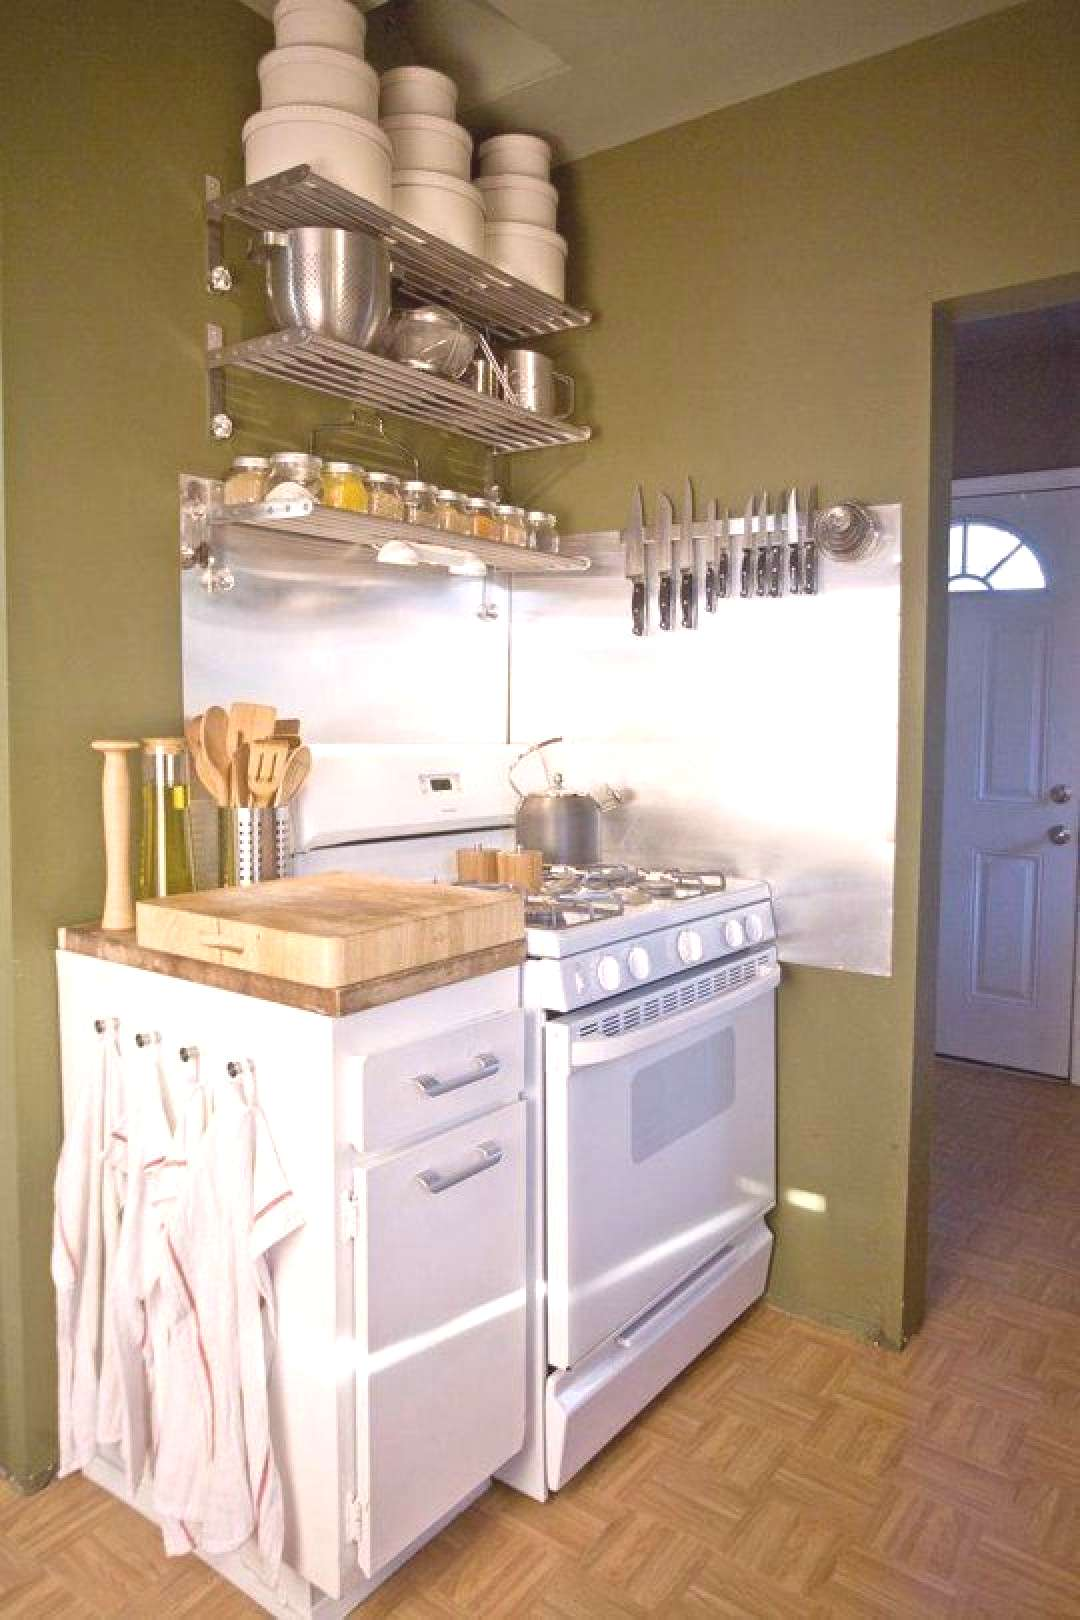 California compact kitchen by Jaime,